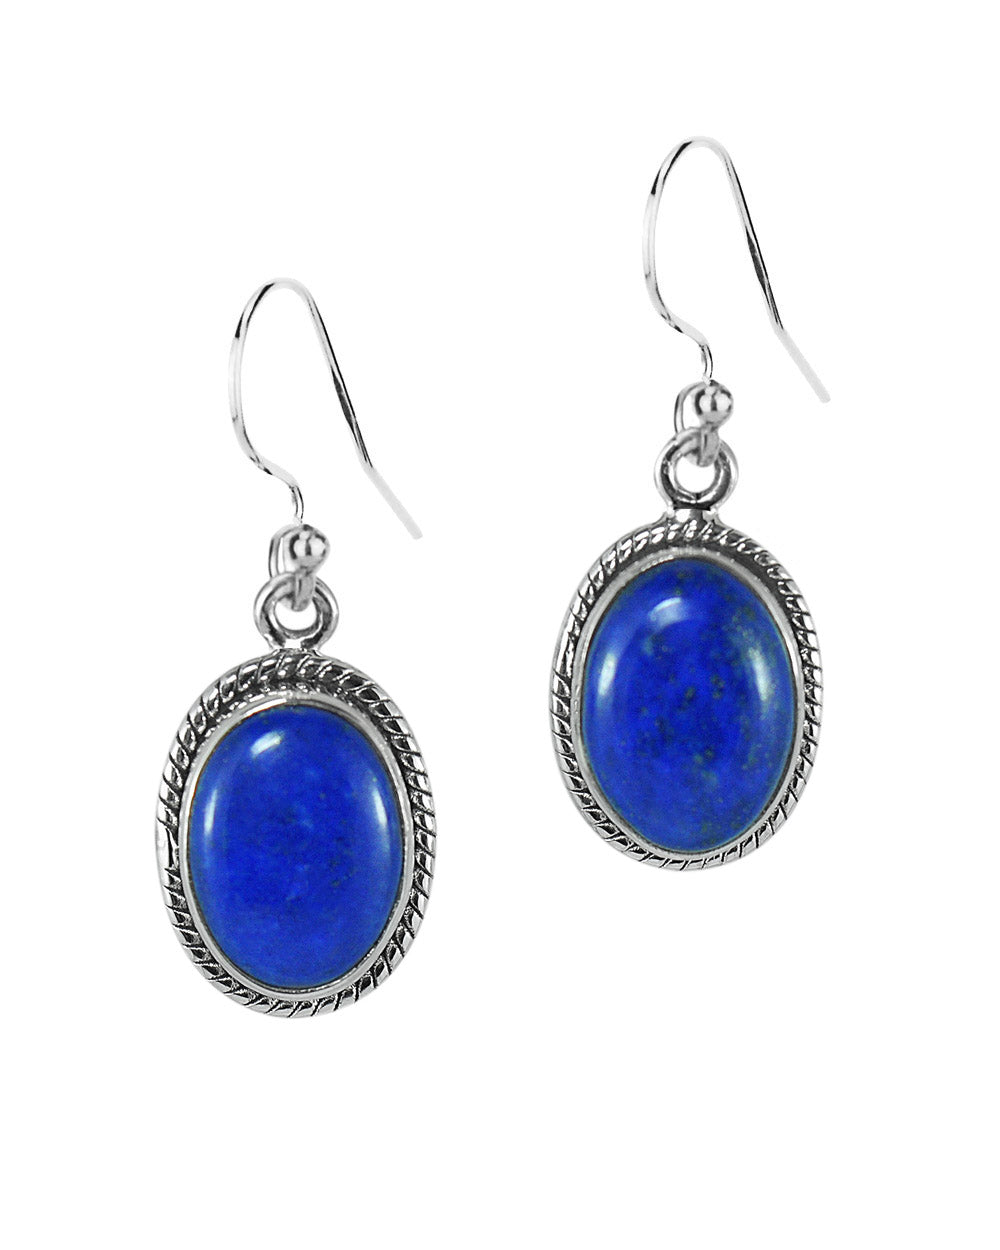 Oval Natural Lapis Lazuli Sterling Silver Statement Earrings